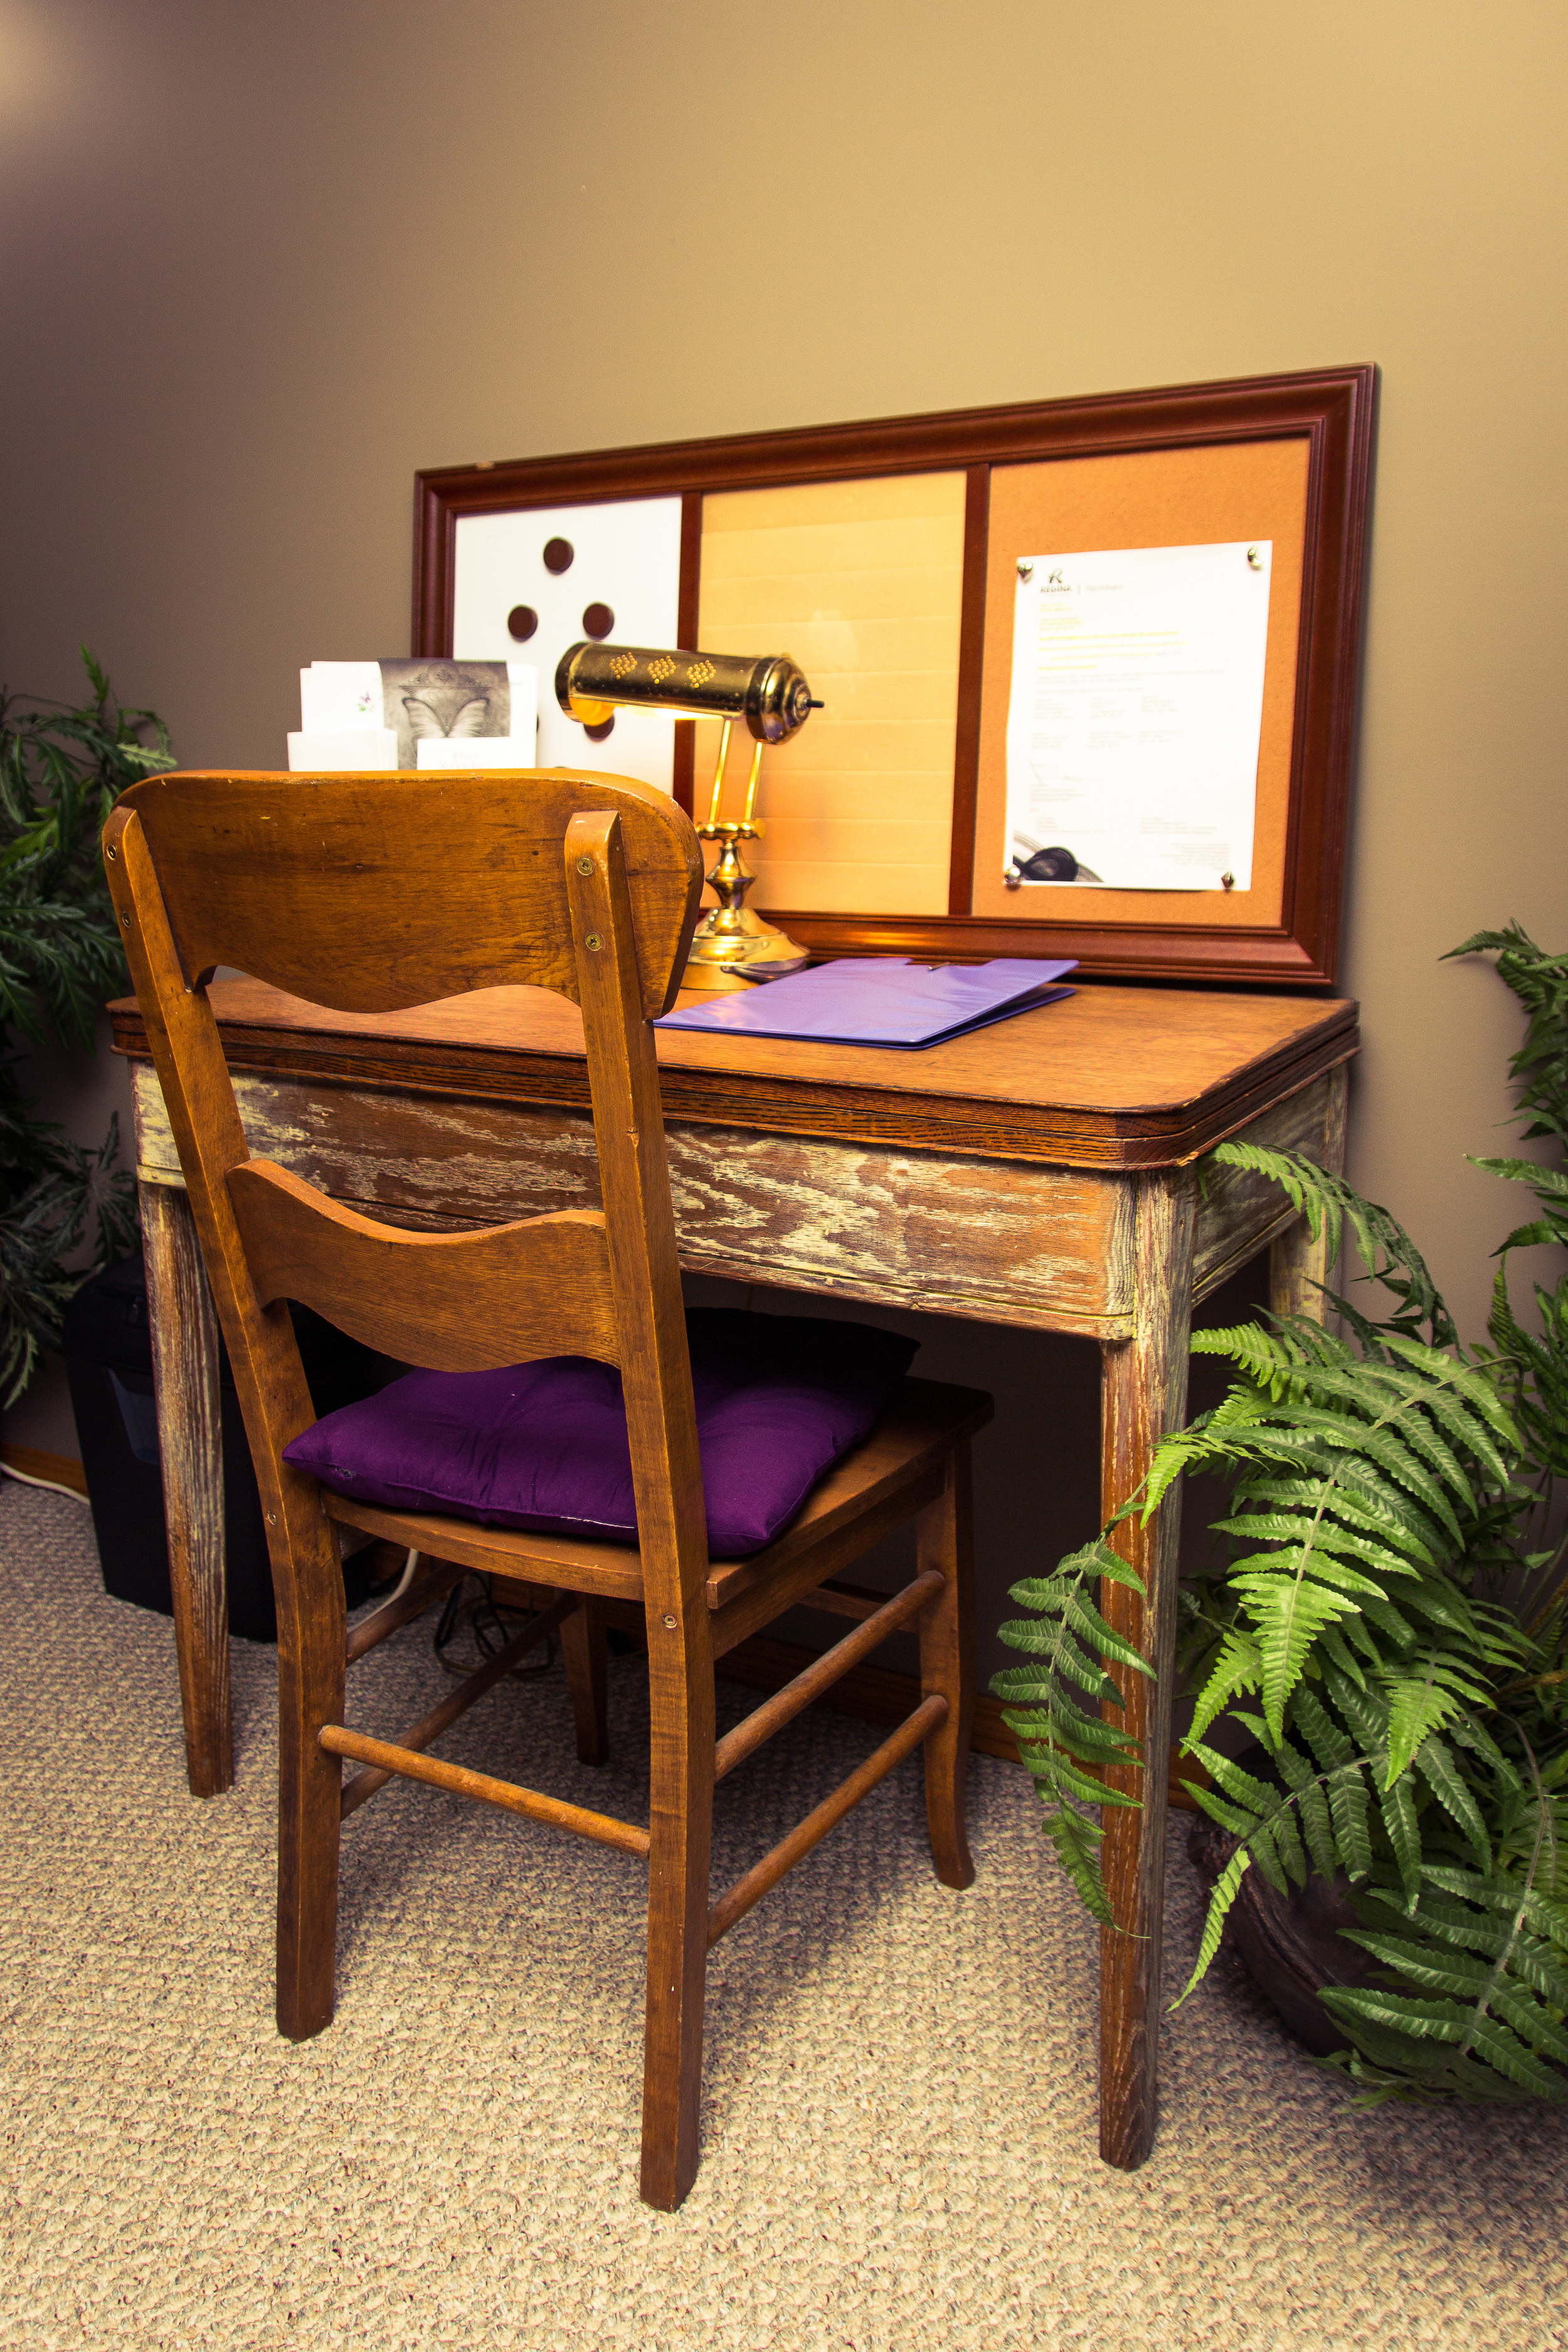 make sure to fill out your form before you come or arrive a little early to sit at this antique desk.